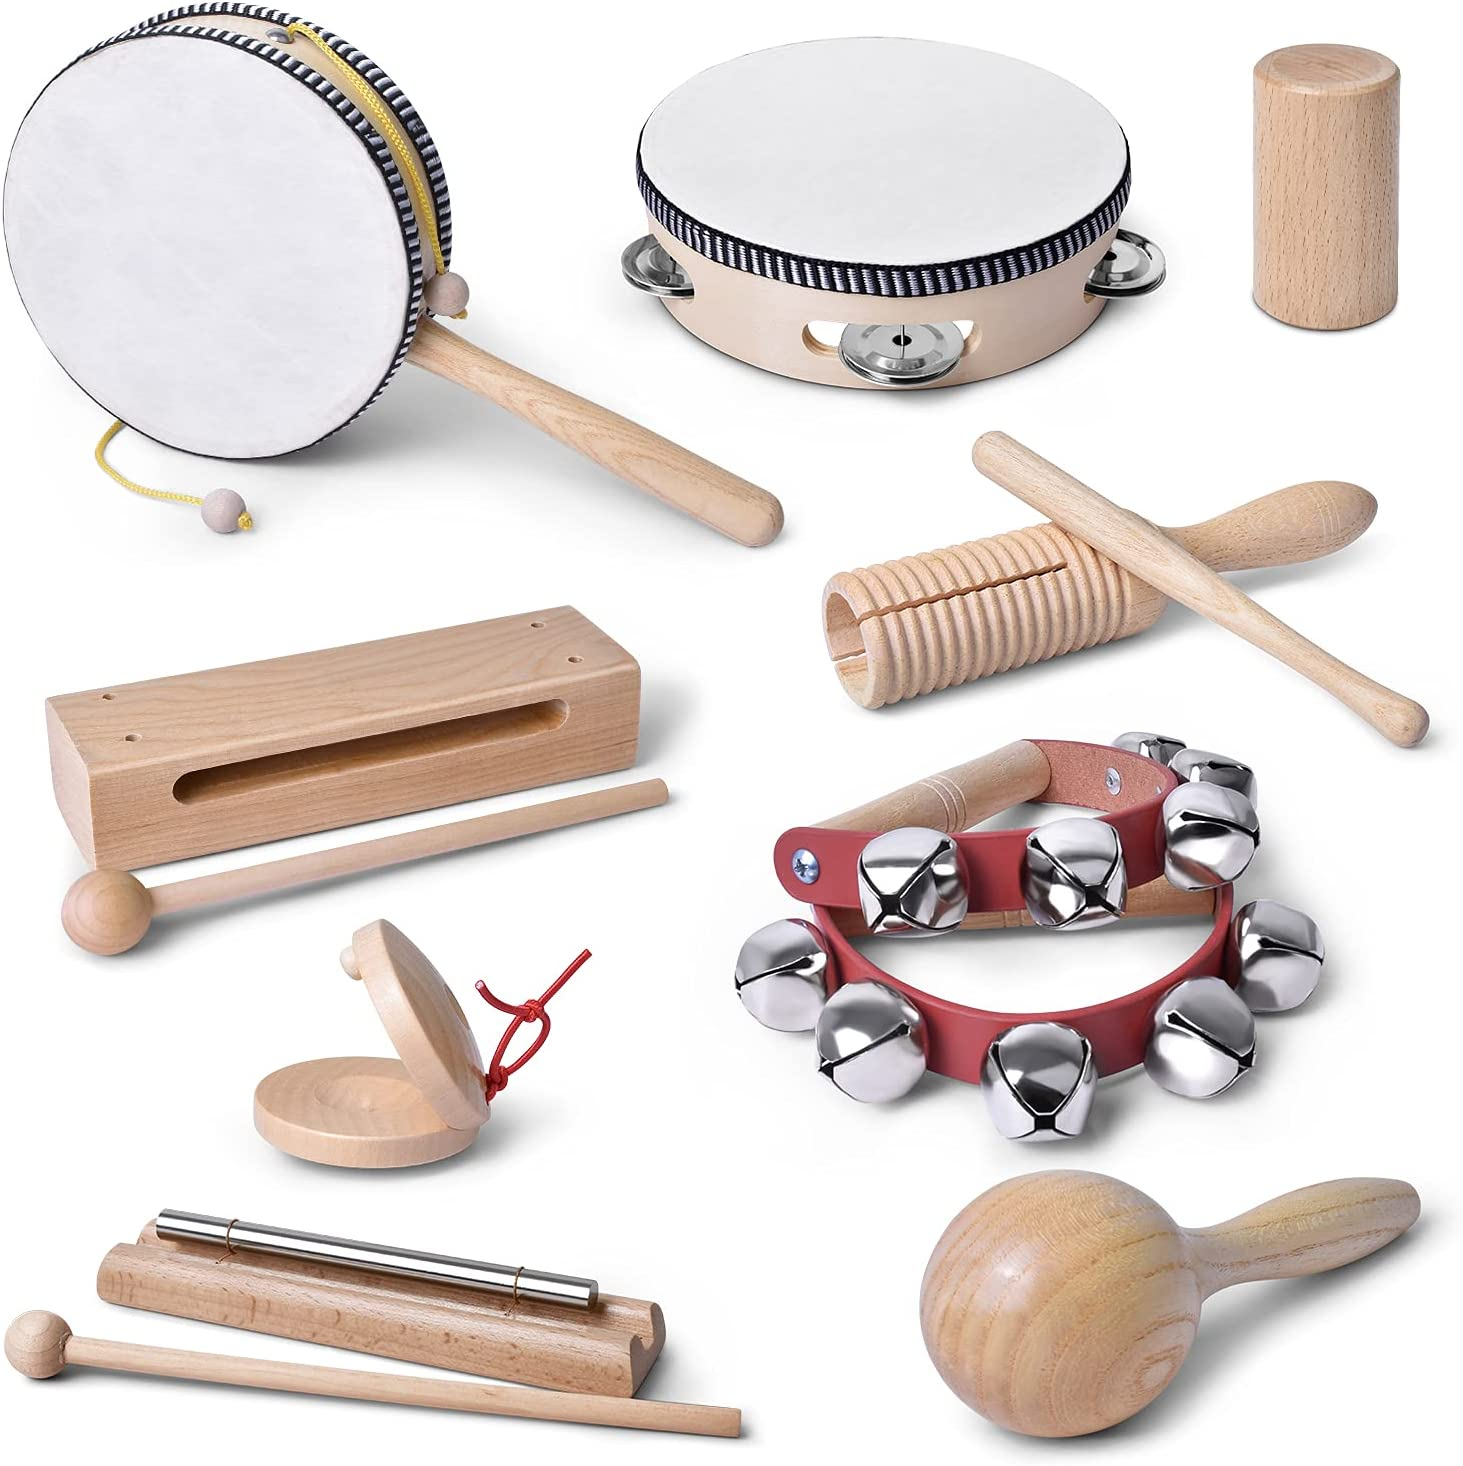 mixi Musical Instruments Toys for Toddlers, Wooden Percussion Instruments for Toddlers 1-3 with Storage Bag, Eco Friendly Drum Set for Kids and Toddlers: Toys & Games